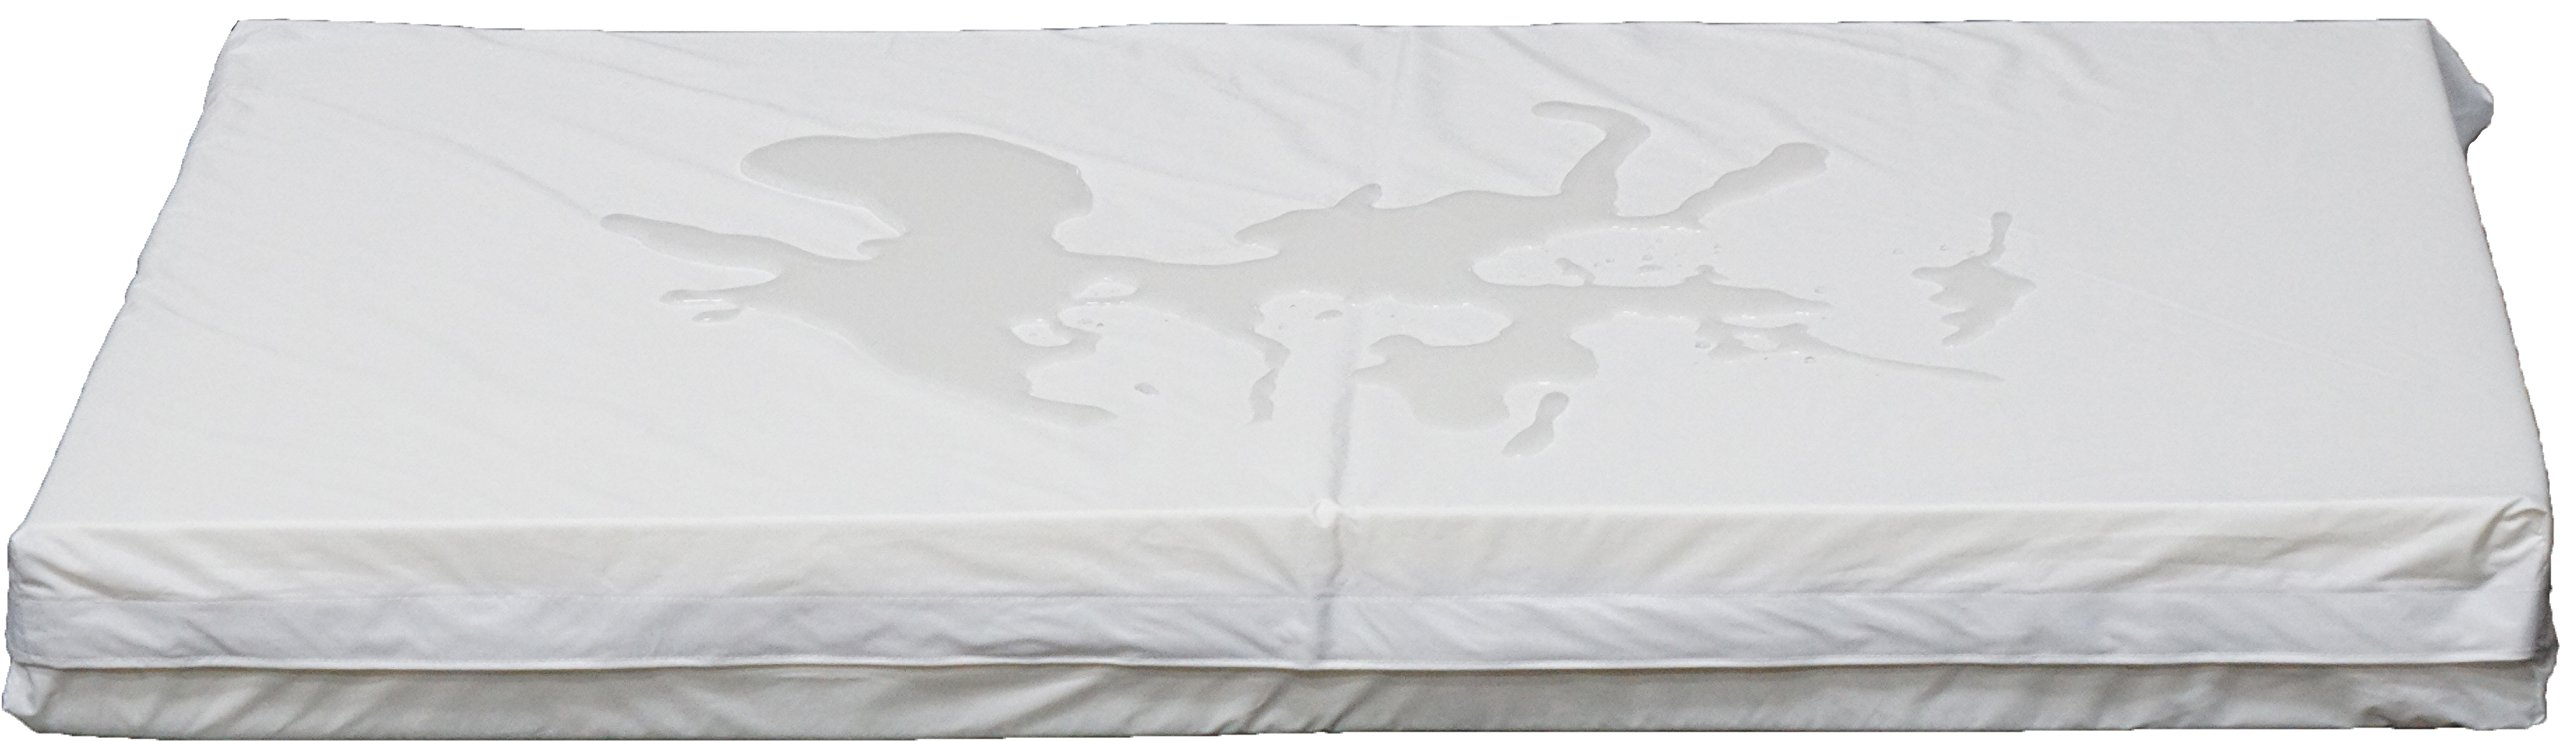 PetBed4Less Elite DIY Durable Dog Bed Dog Pillow Pet Bed Removable Waterproof Liner Small, Medium to Super Large - 8 sizes - Waterproof Liner only (Elite 37''x27''x4'')